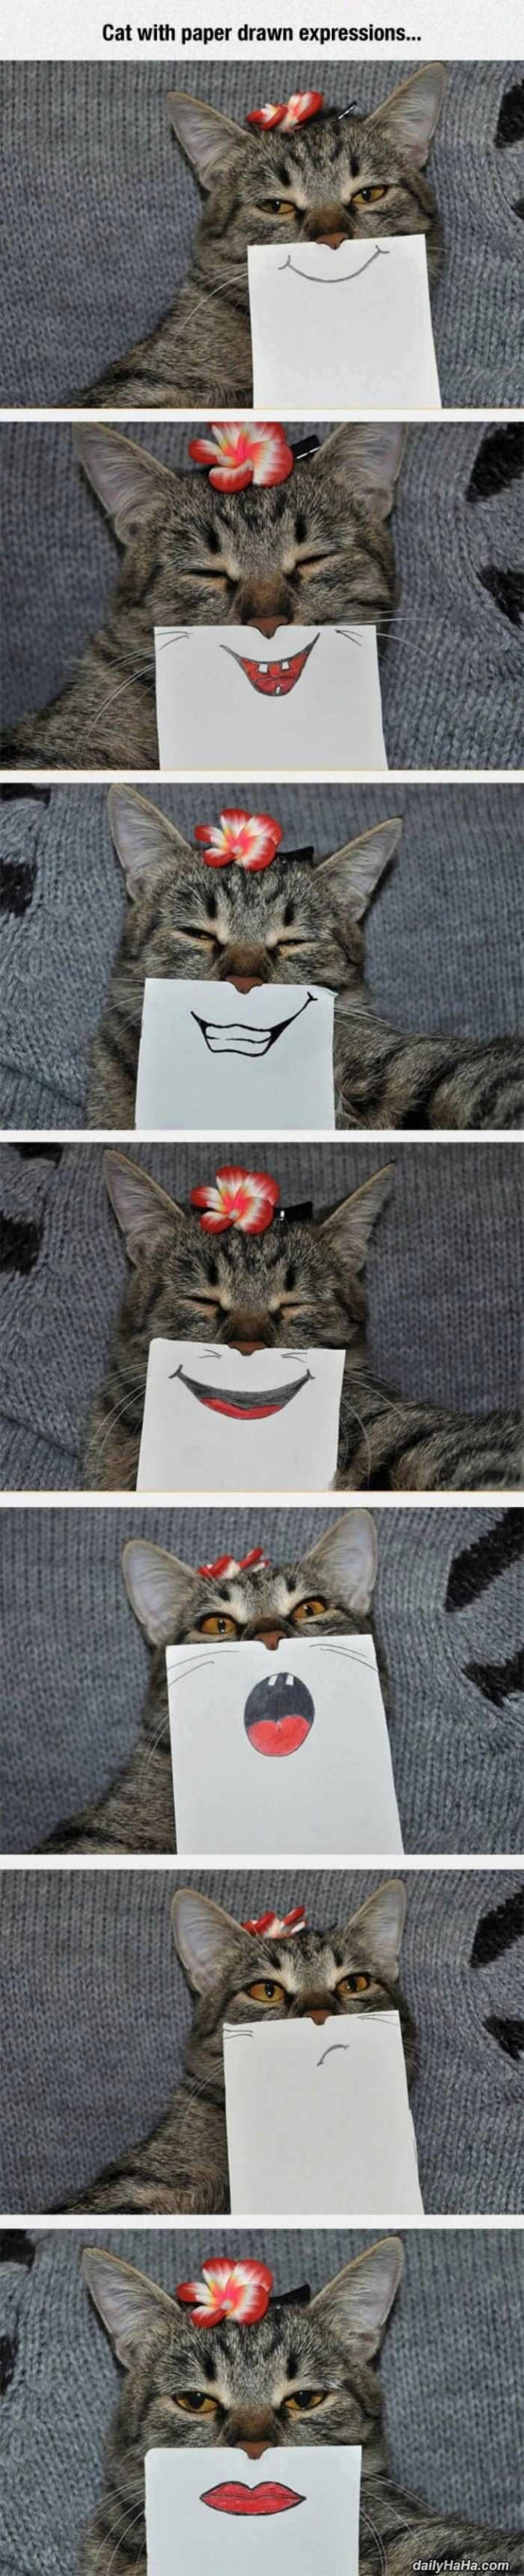 75 Incredibly Funny Pictures That Will Make You Smile - Cats are so funny with drawn expressions.